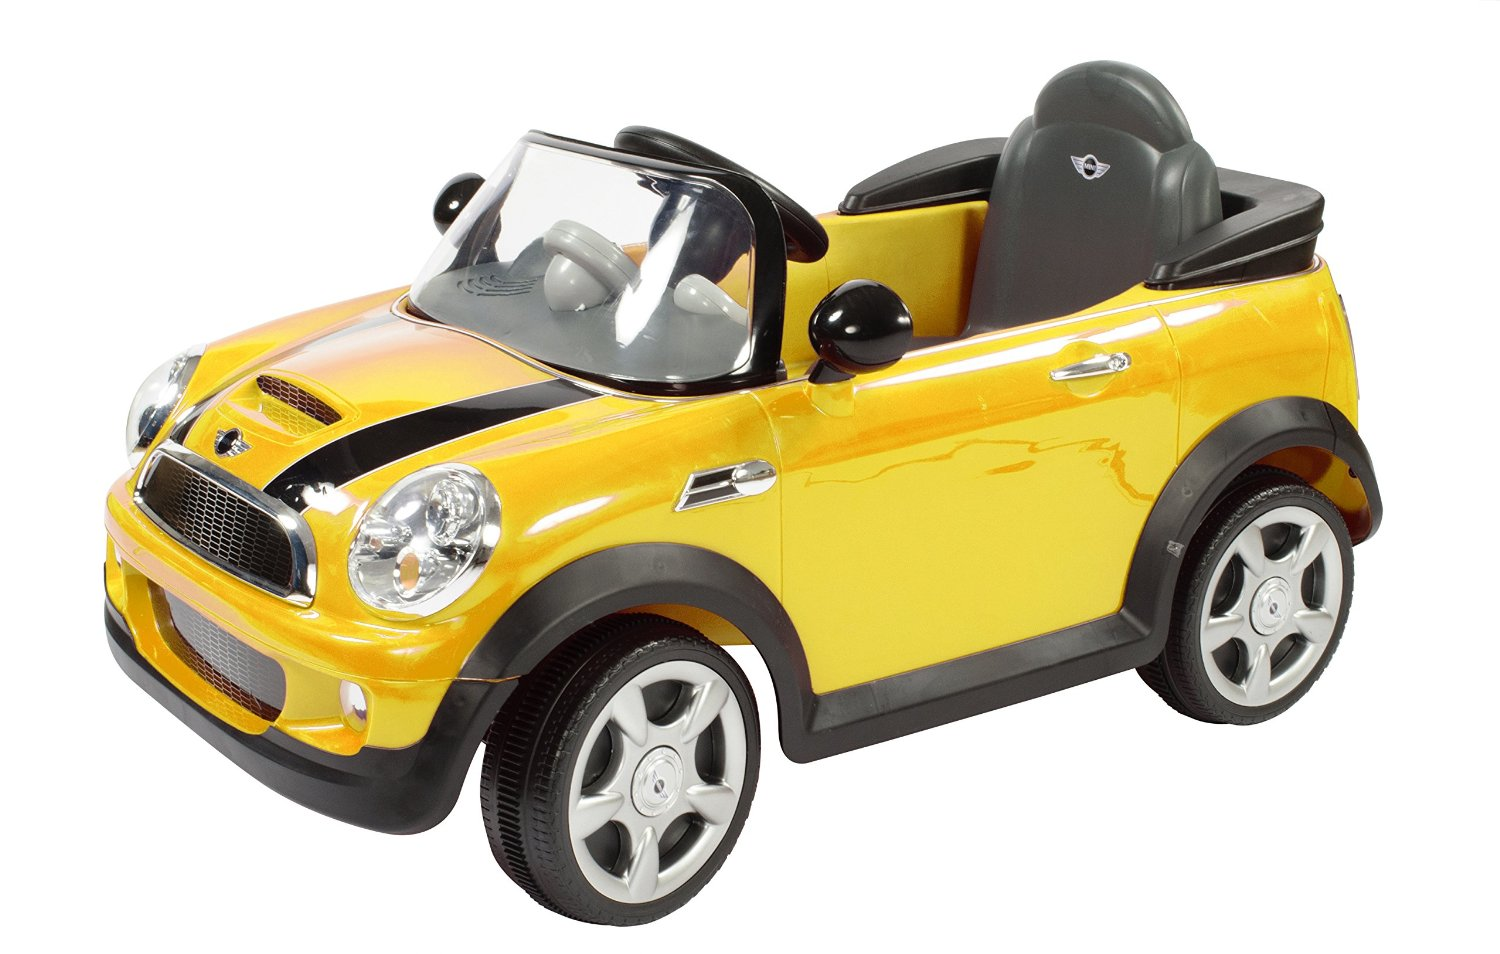 amazon prime rollplay 6v mini cooper child 39 s battery ride on reg common. Black Bedroom Furniture Sets. Home Design Ideas